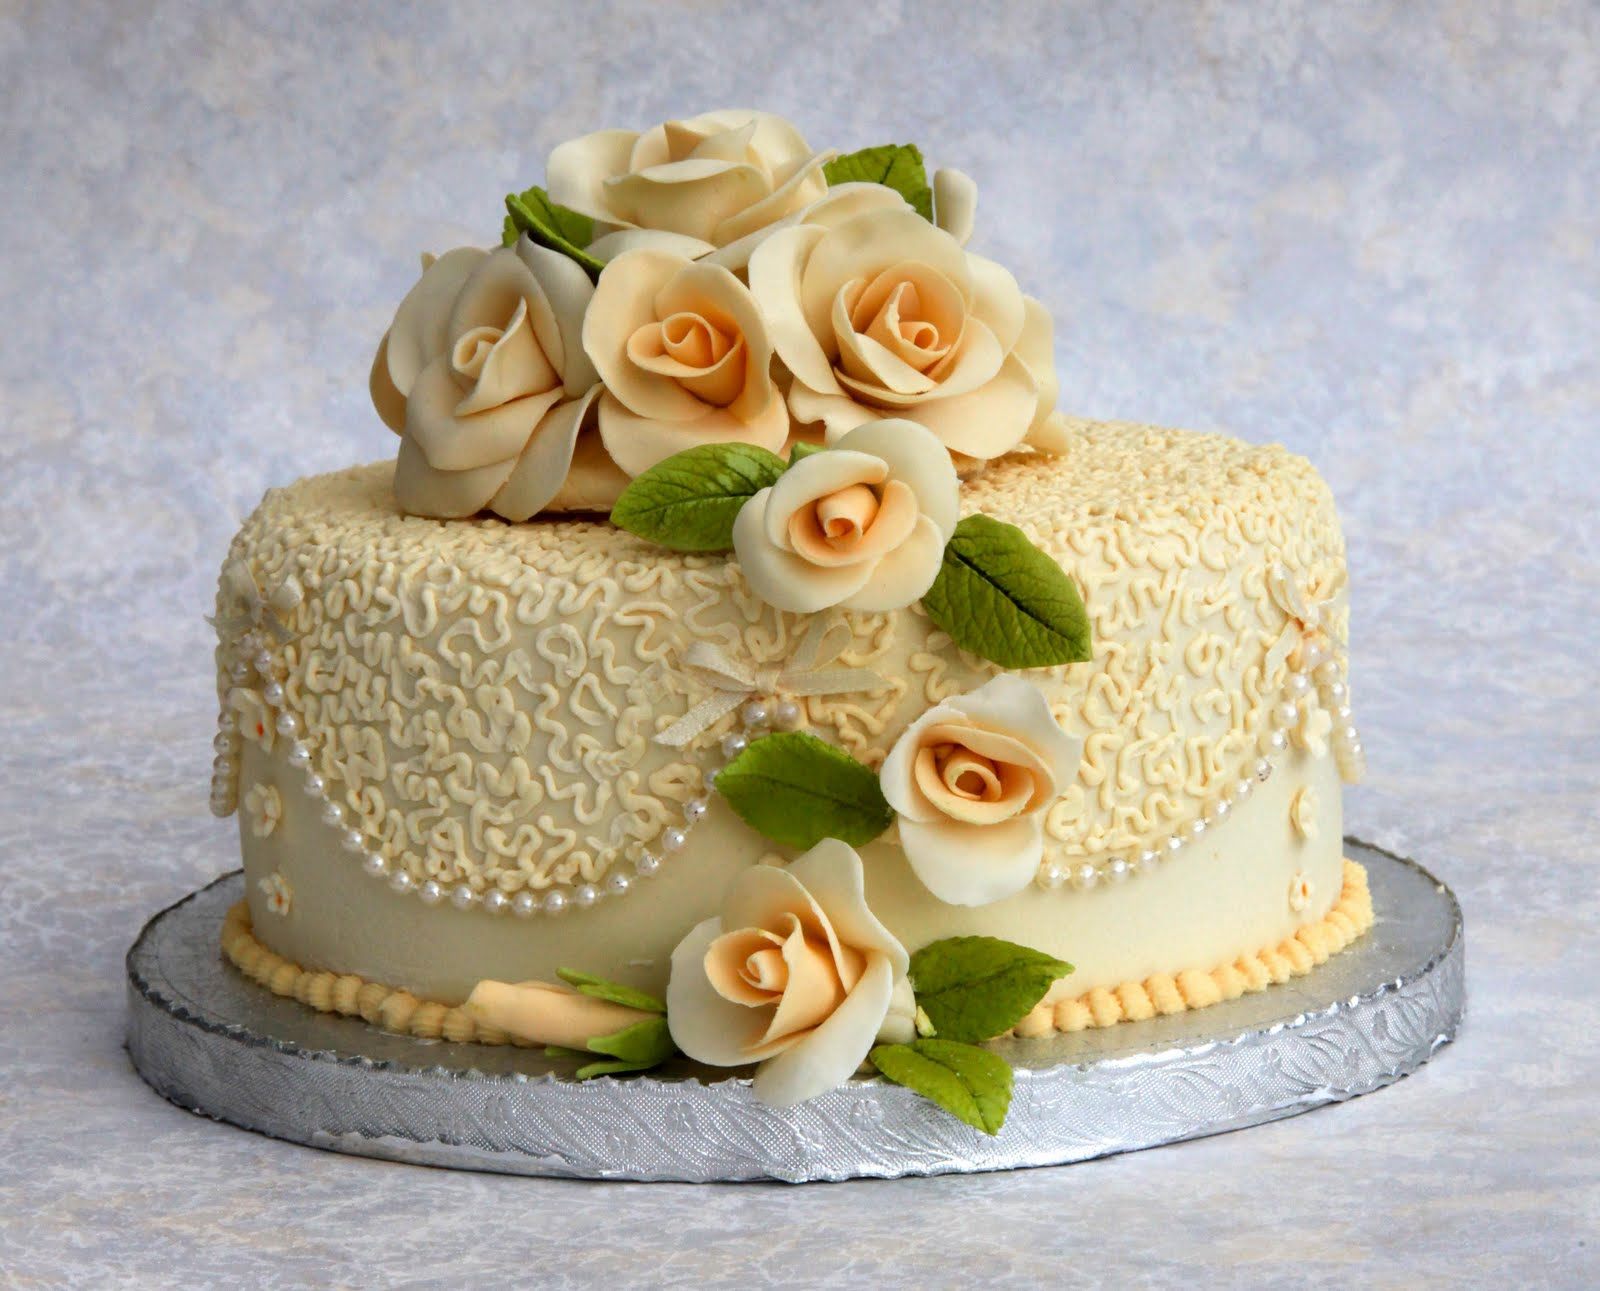 Cake Designs And Pictures : 25 Most Beautiful Cake Selections - Page 4 of 25